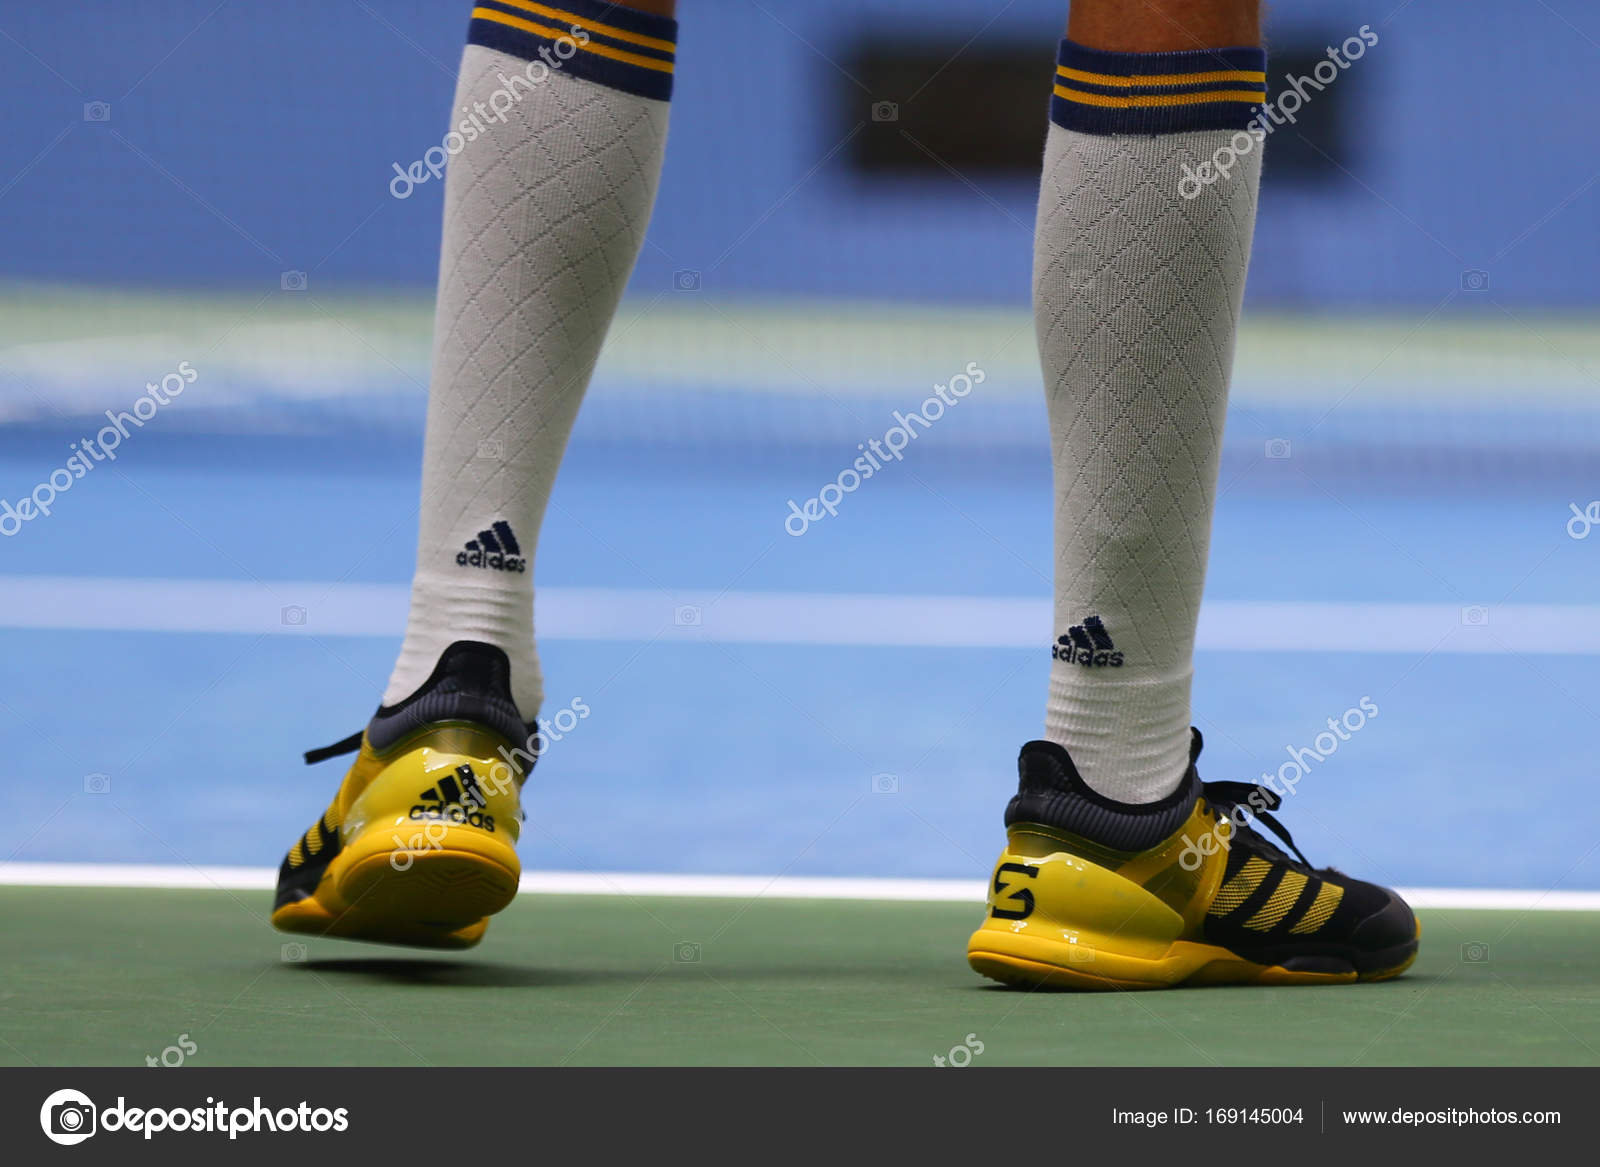 indice Medico comfort  Professional tennis player Alexander Zverev of Germany wears custom Adidas  tennis shoes – Stock Editorial Photo © zhukovsky #169145004